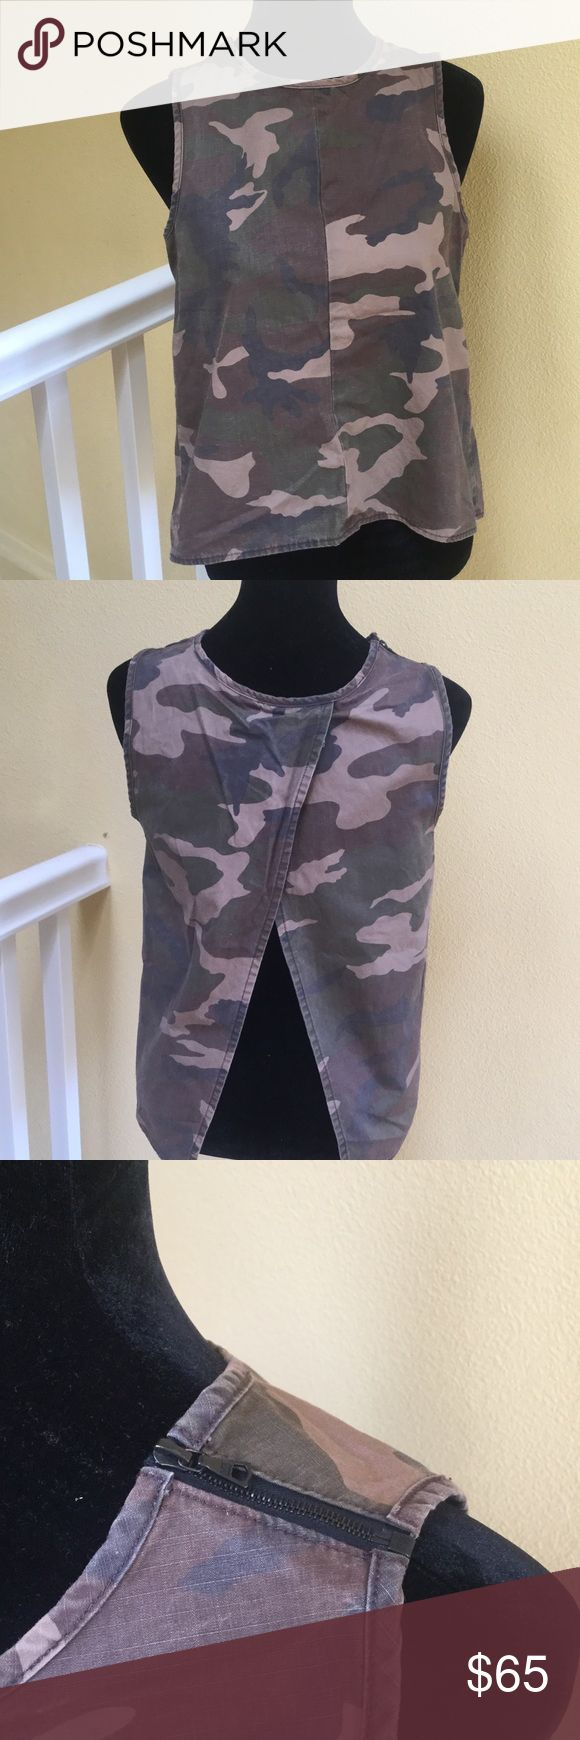 Rag and bone camouflage top Used rag and bone denim camouflage top.  Has zipper on top right shoulder. Open in the back. Trendy top for spring! rag & bone Tops Tank Tops